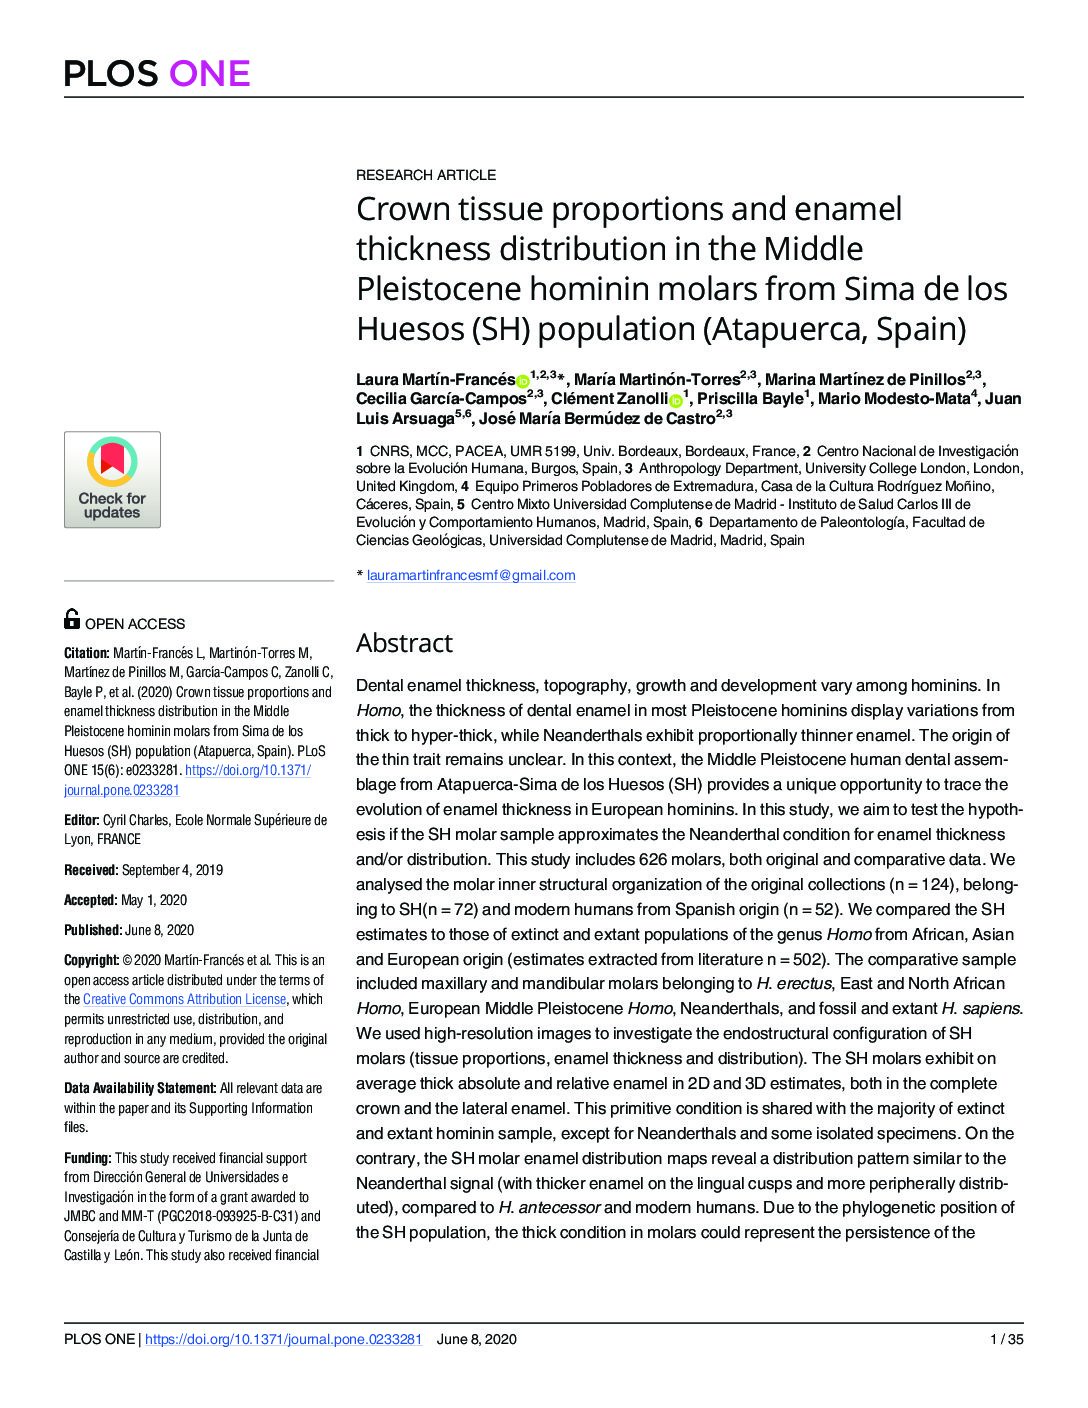 Crown tissue proportions and enamel thickness distribution in the Middle Pleistocene hominin molars from Sima de los Huesos (SH) population (Atapuerca, Spain)